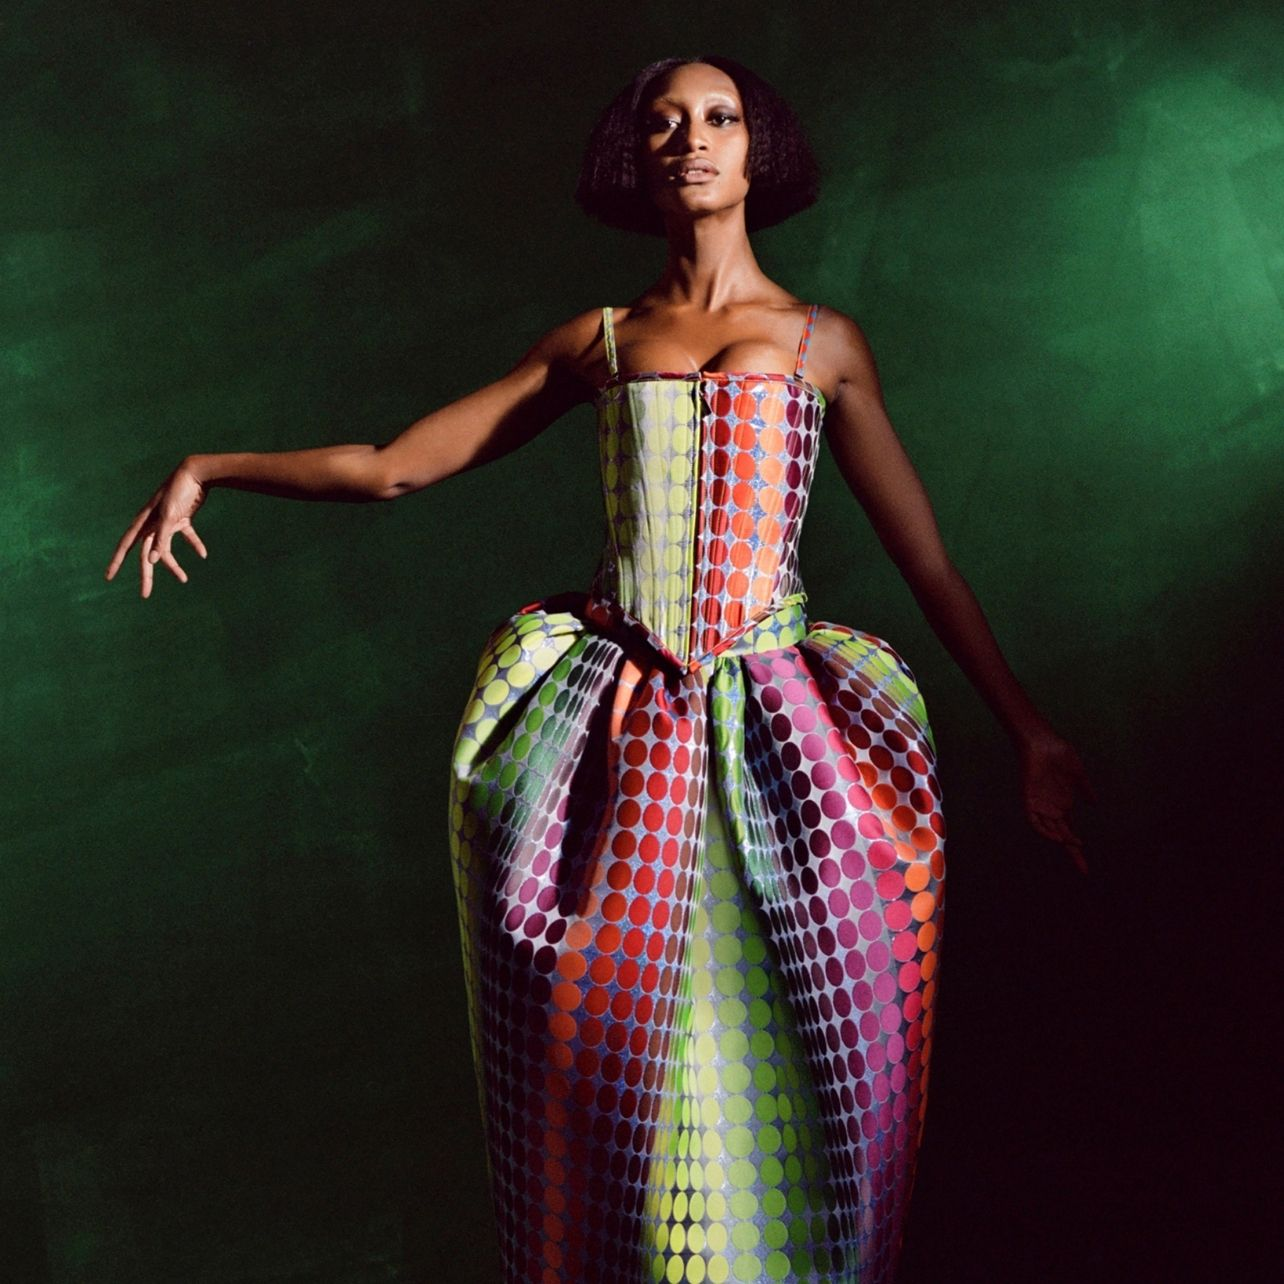 Woman poses wearing a structured dress with a multicolored dot pattern